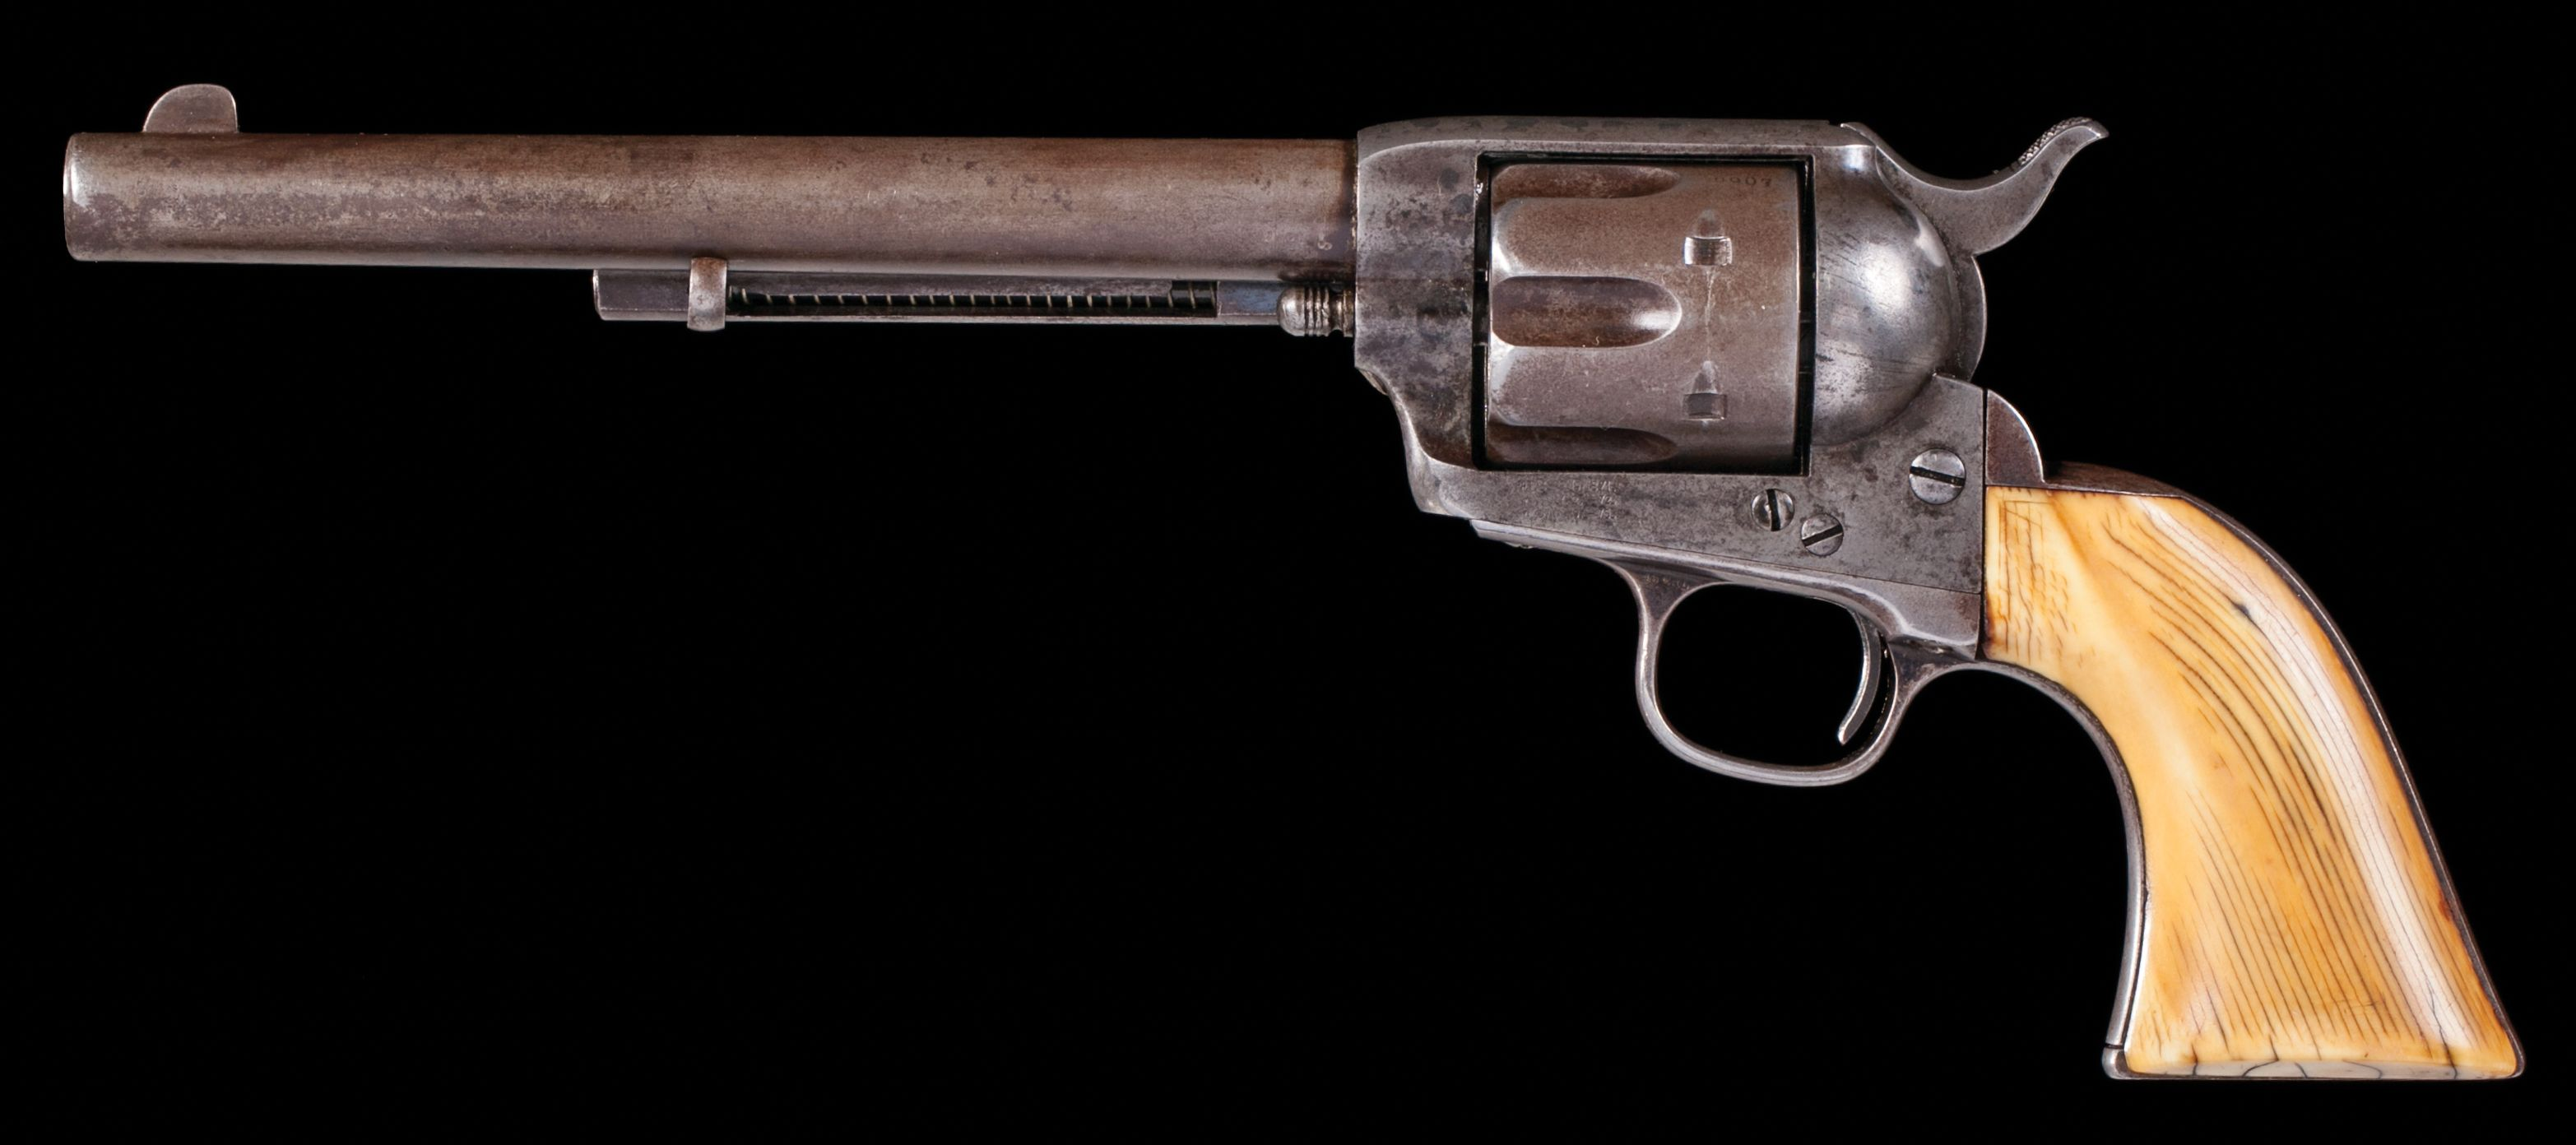 Colt Single Action Army .45 caliber, 7 ½ inch barrel, original blue and case color finish; one-piece grips, all matching numbers, circa 1883. Condition: Bore is very strong with minor pin prick oxidation, surface is smooth aged gun metal with touches of blue, grips were lightly checkered long ago and have worn down from use; the safety notch on the hammer is chipped otherwise excellent mechanically.